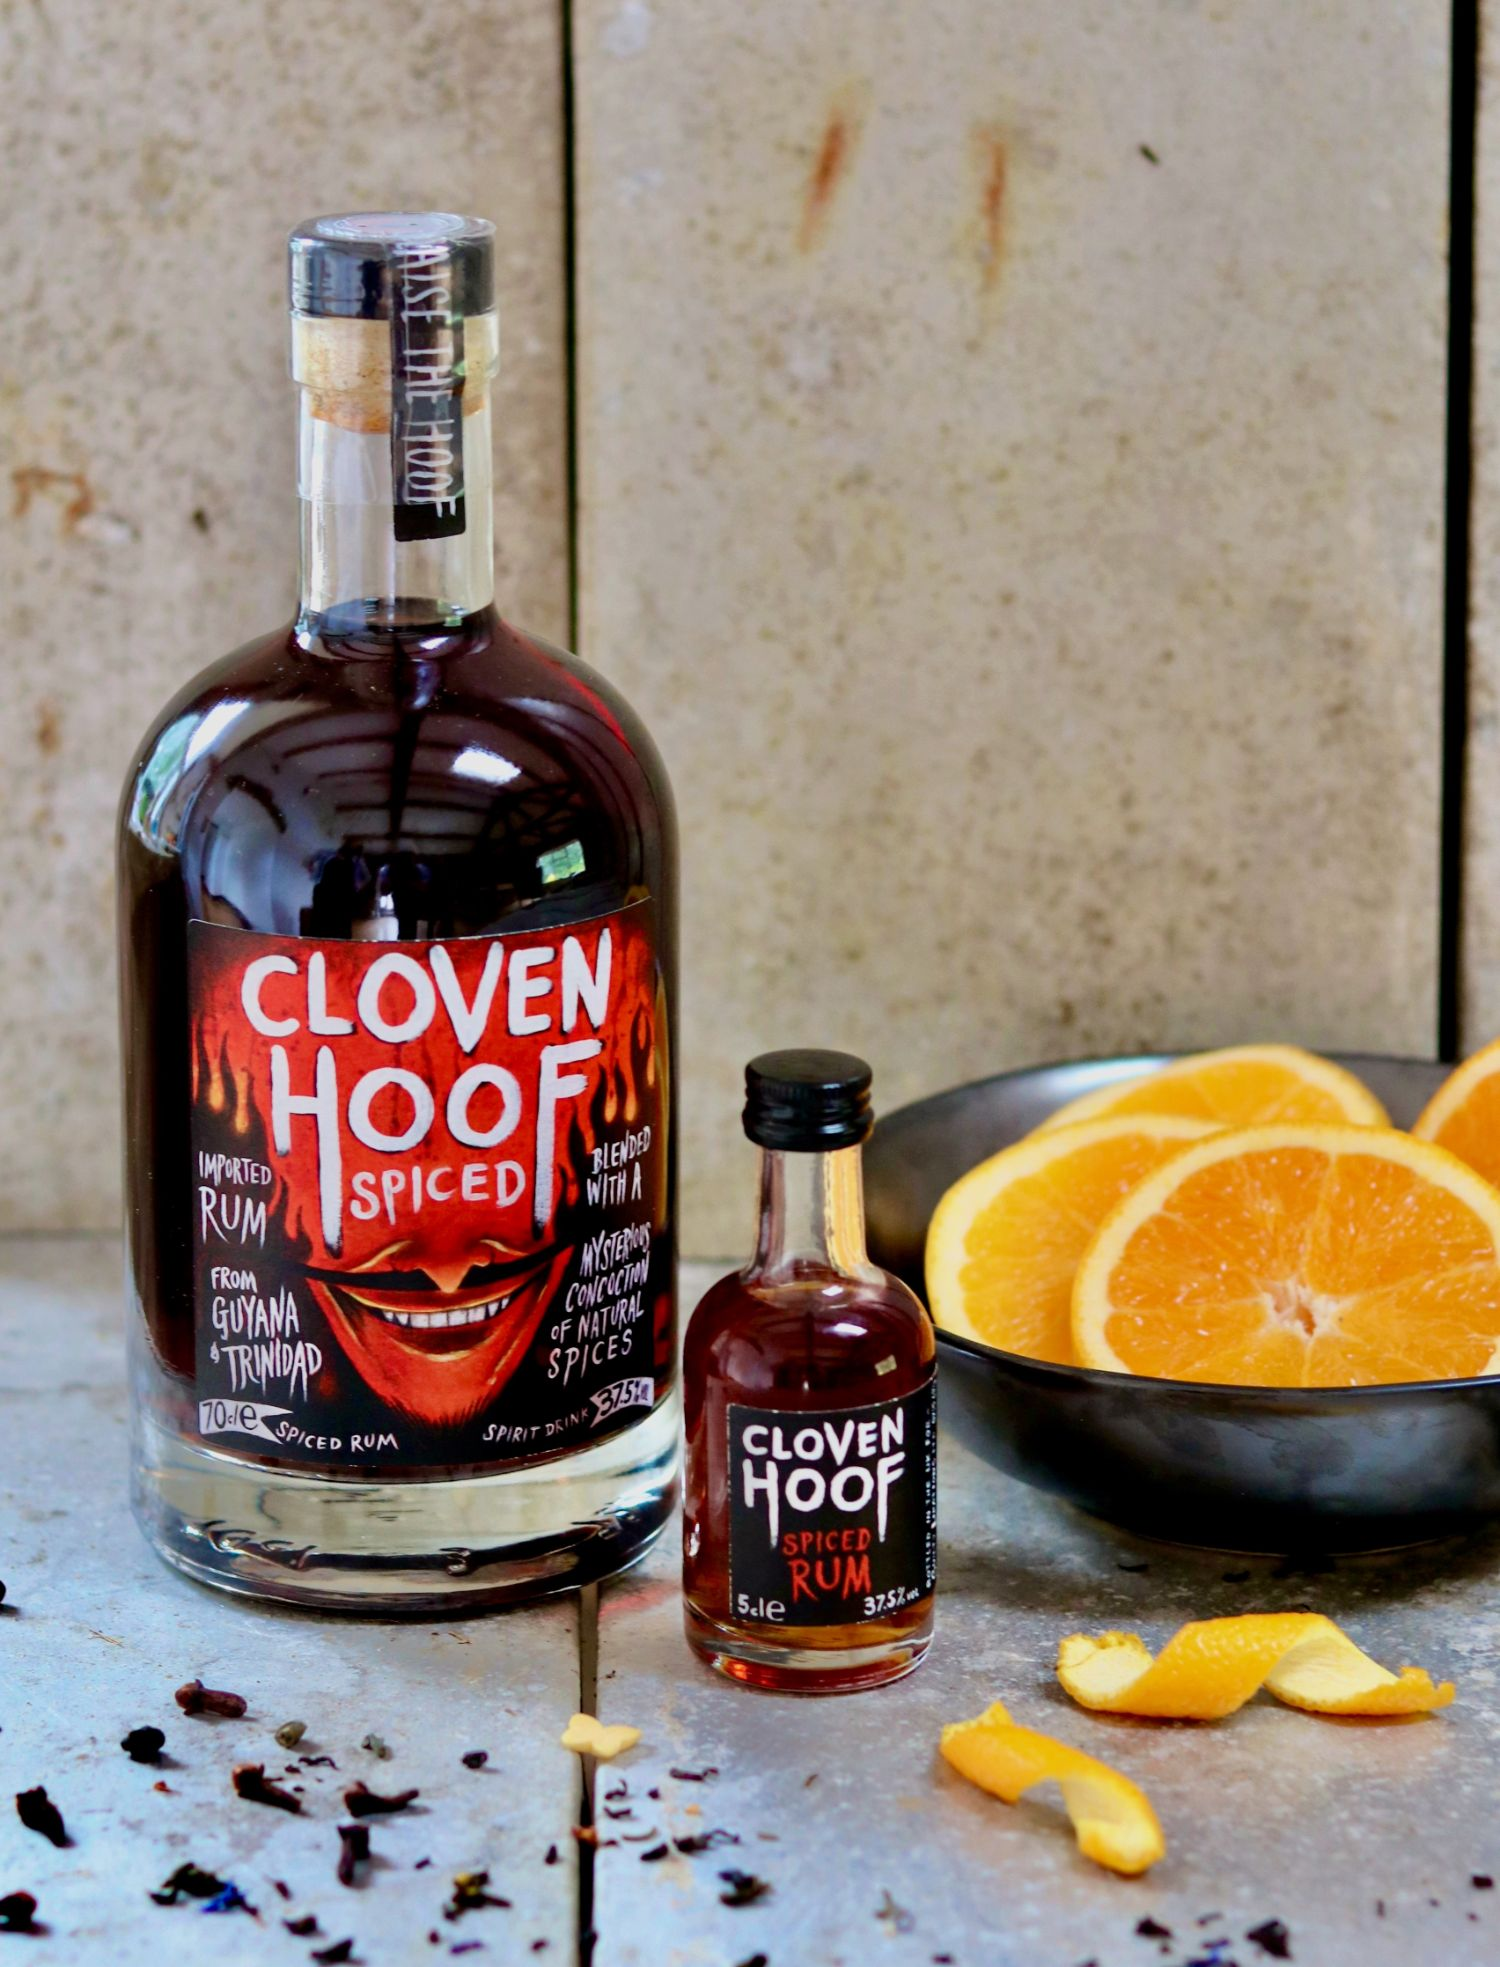 70cl Bottle of the devilishly delicious Cloven Hoof Spiced Rum.